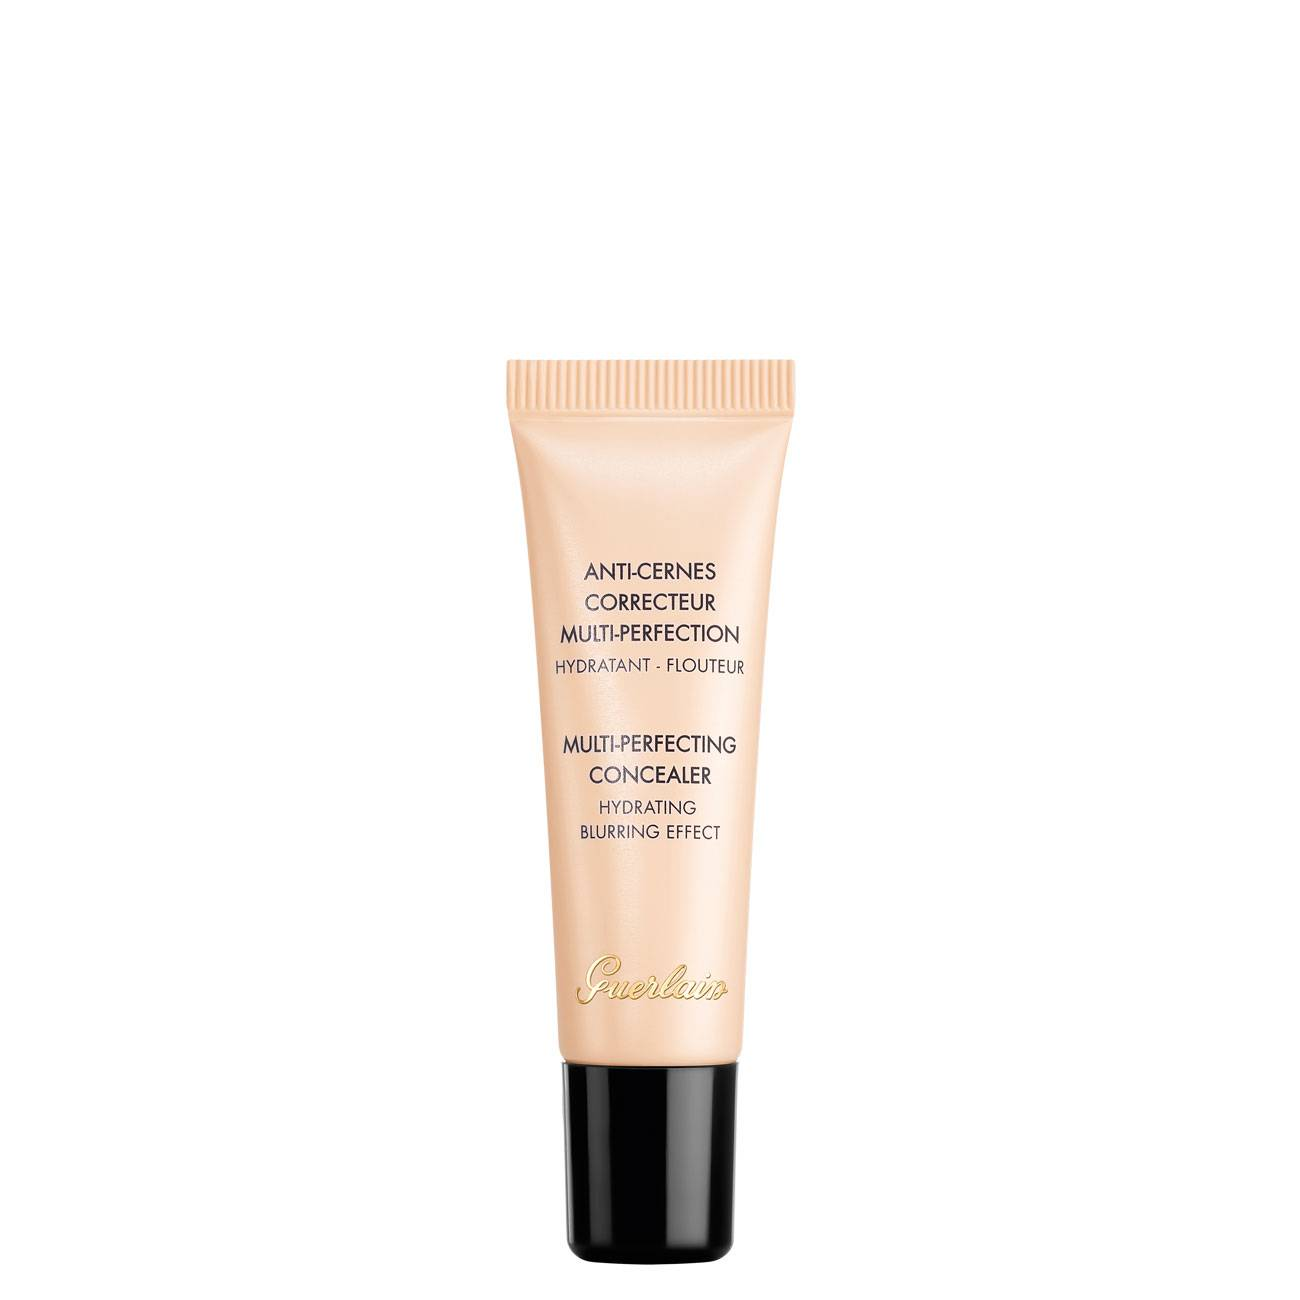 Multi-Perfecting Concealer 12 Ml Guerlain imagine 2021 bestvalue.eu